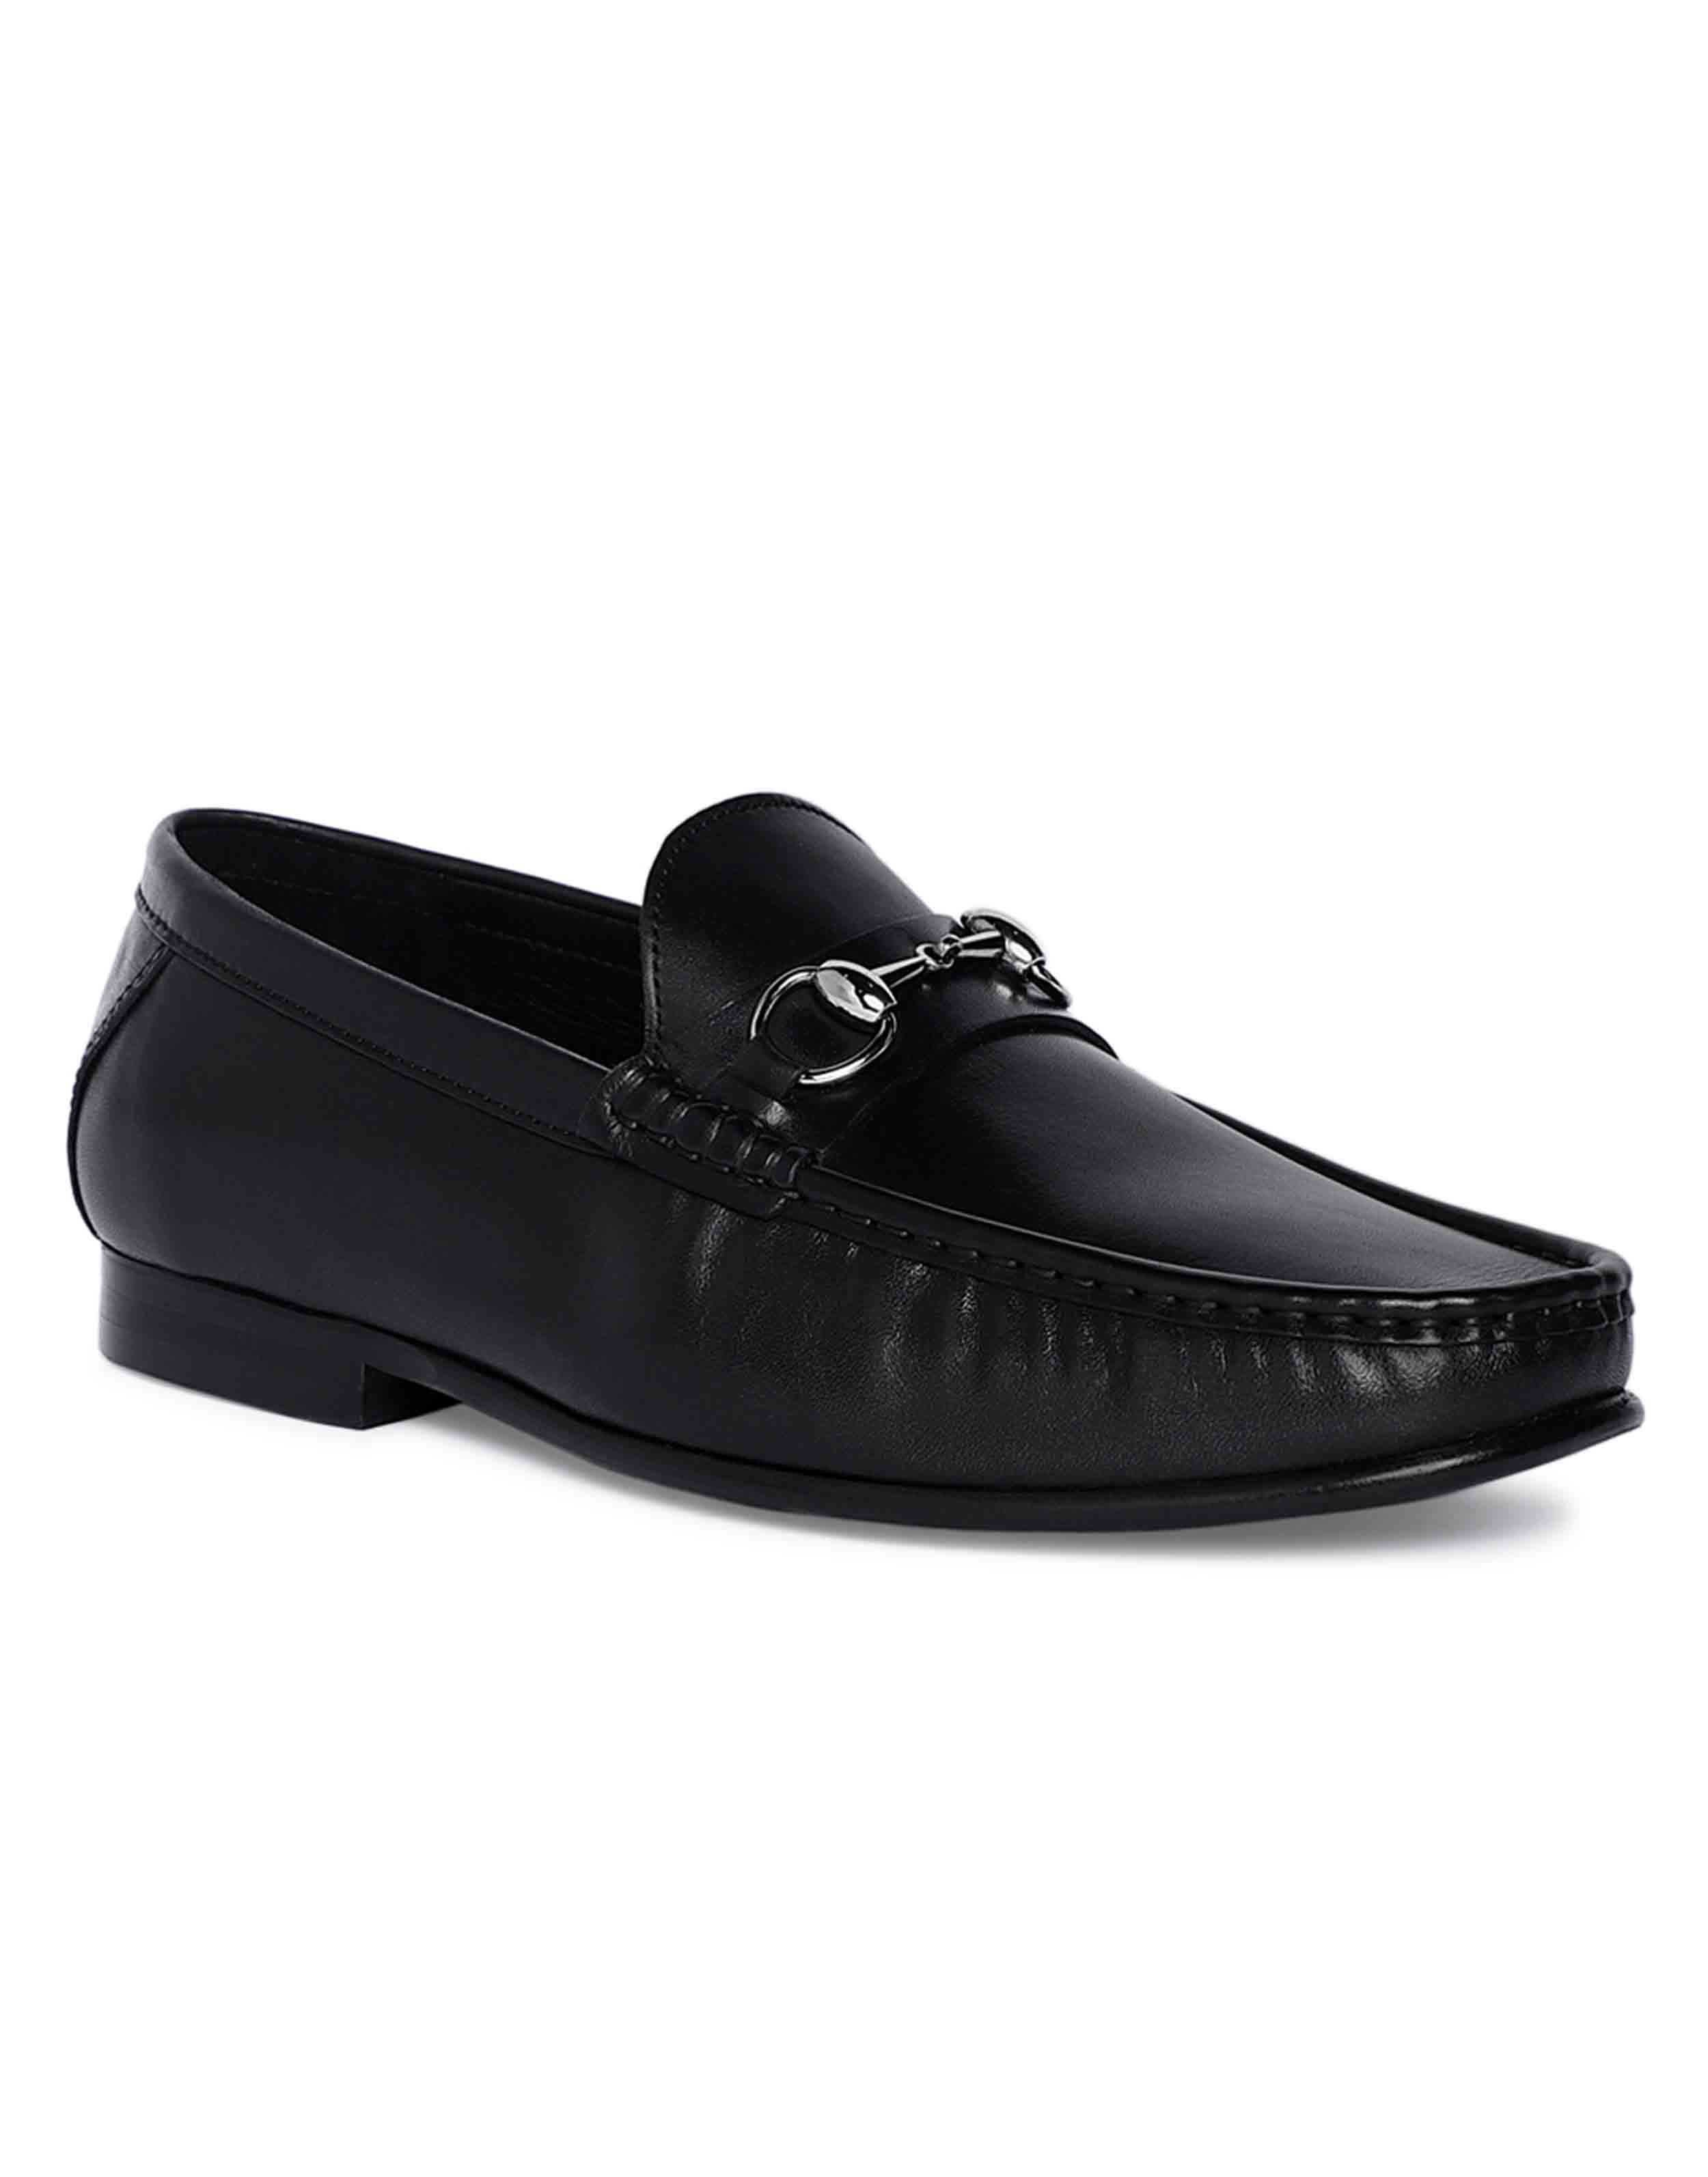 Charcoal Horse-bit Loafer 2